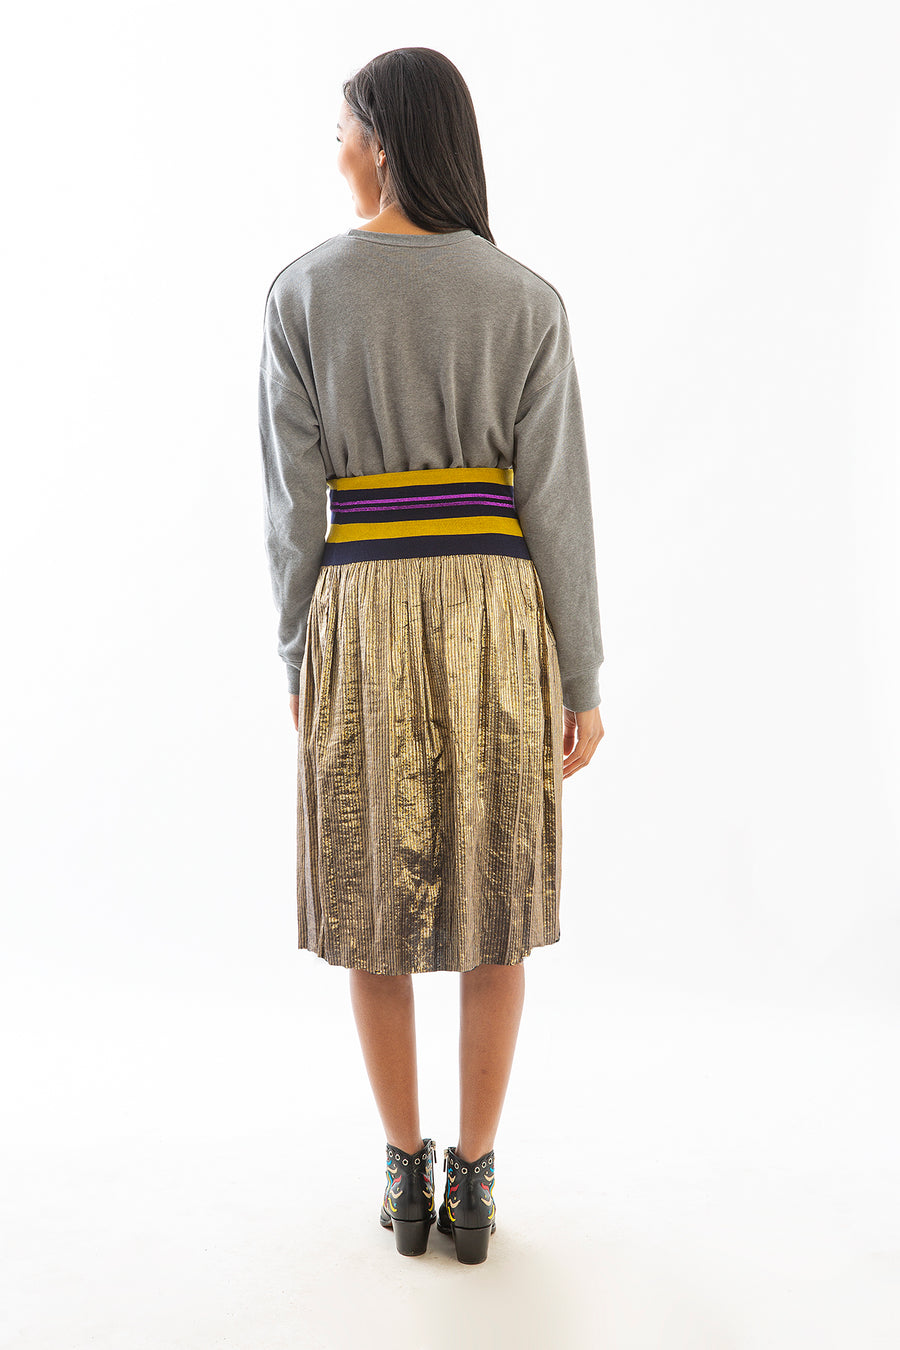 CARLISLE SKIRT GOLD METALLIC *LIMITED*EDITION*